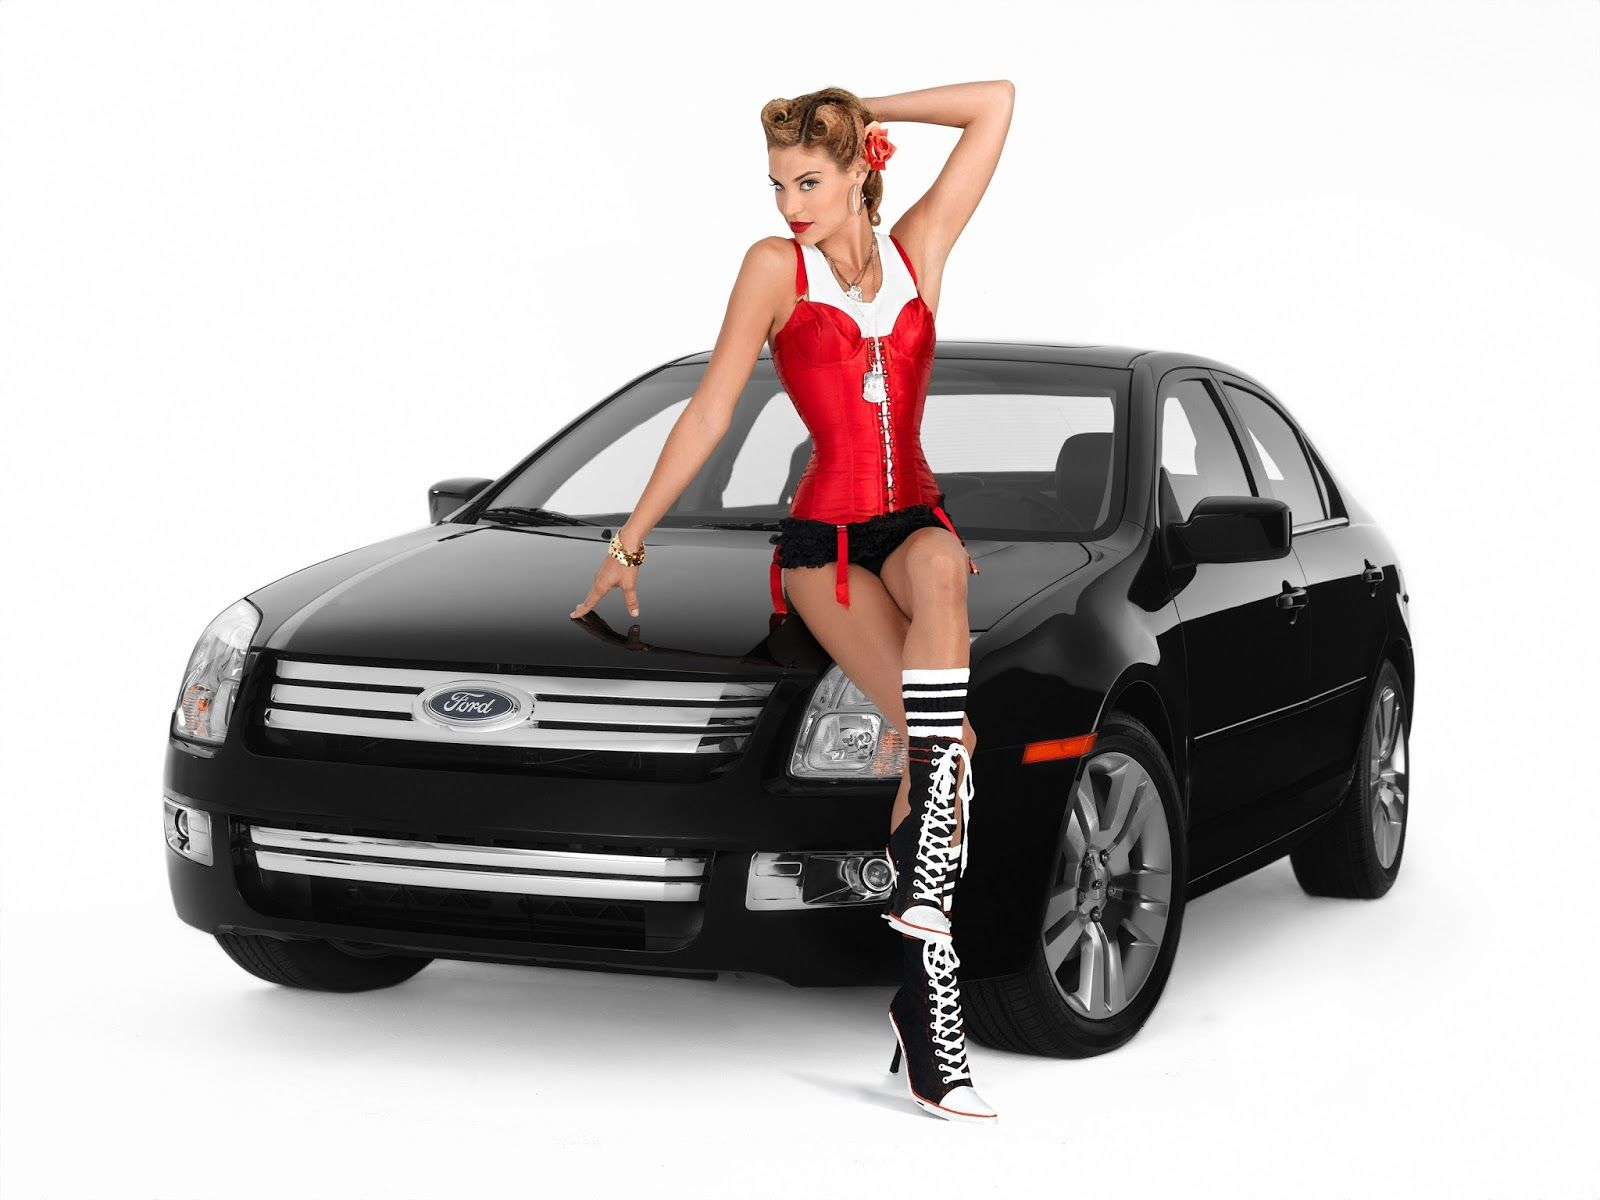 Lisa d amato 1940s vargas pin ups with a ford fusion